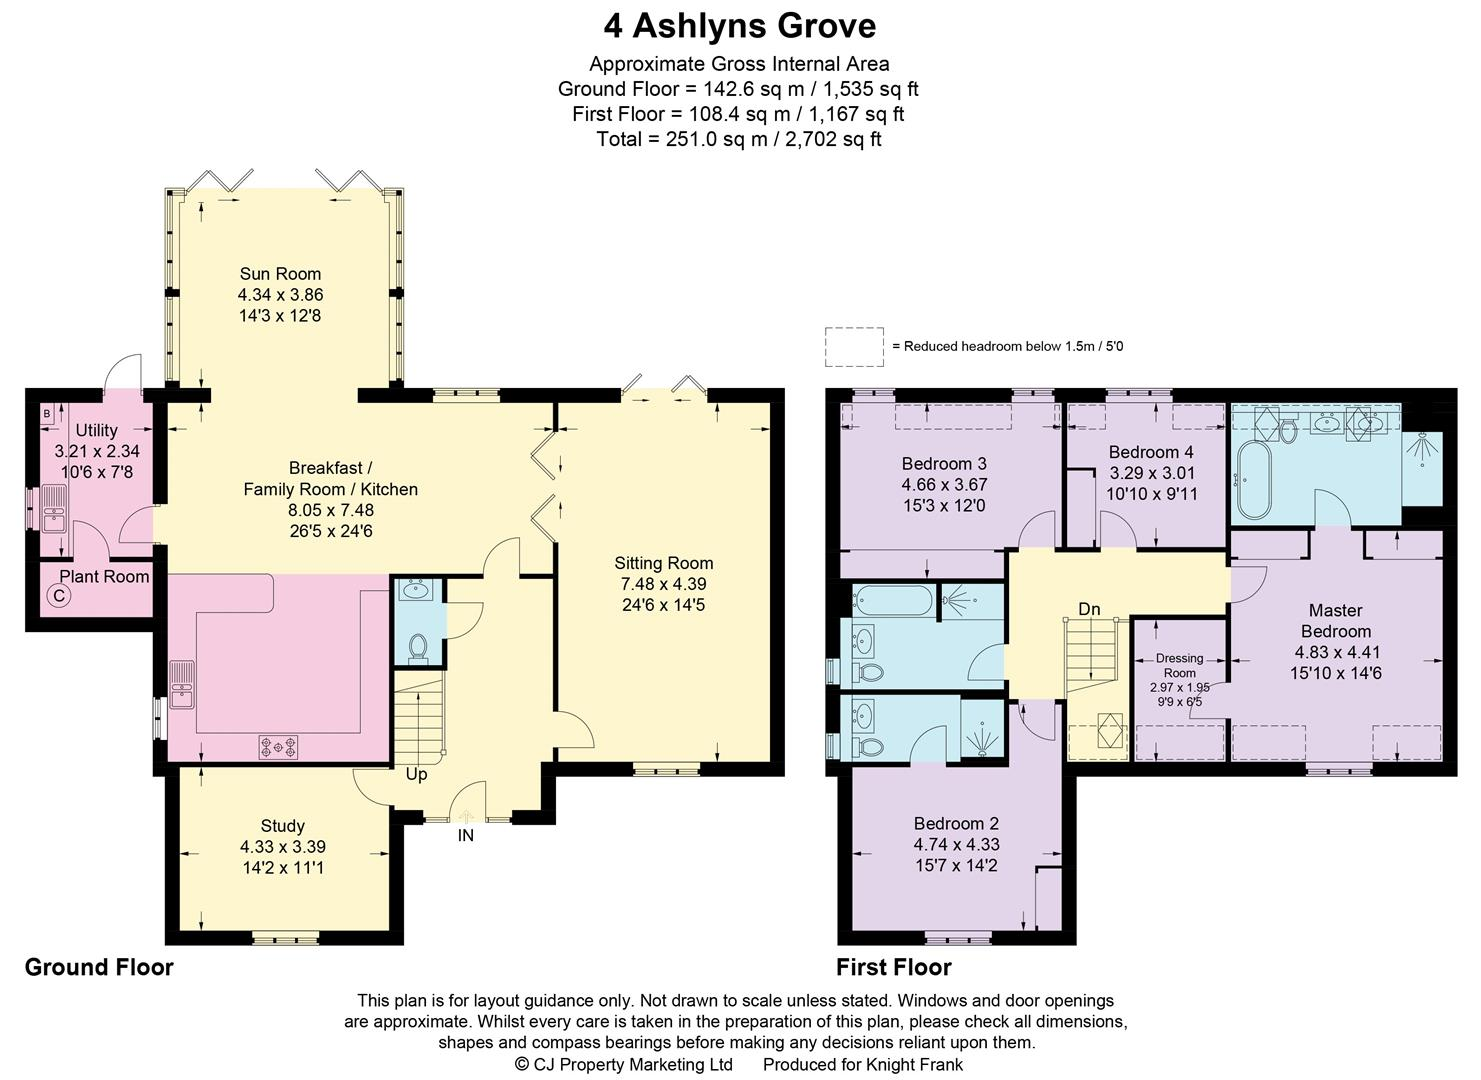 Floorplan - 4 Ashlyns Grove.jpg